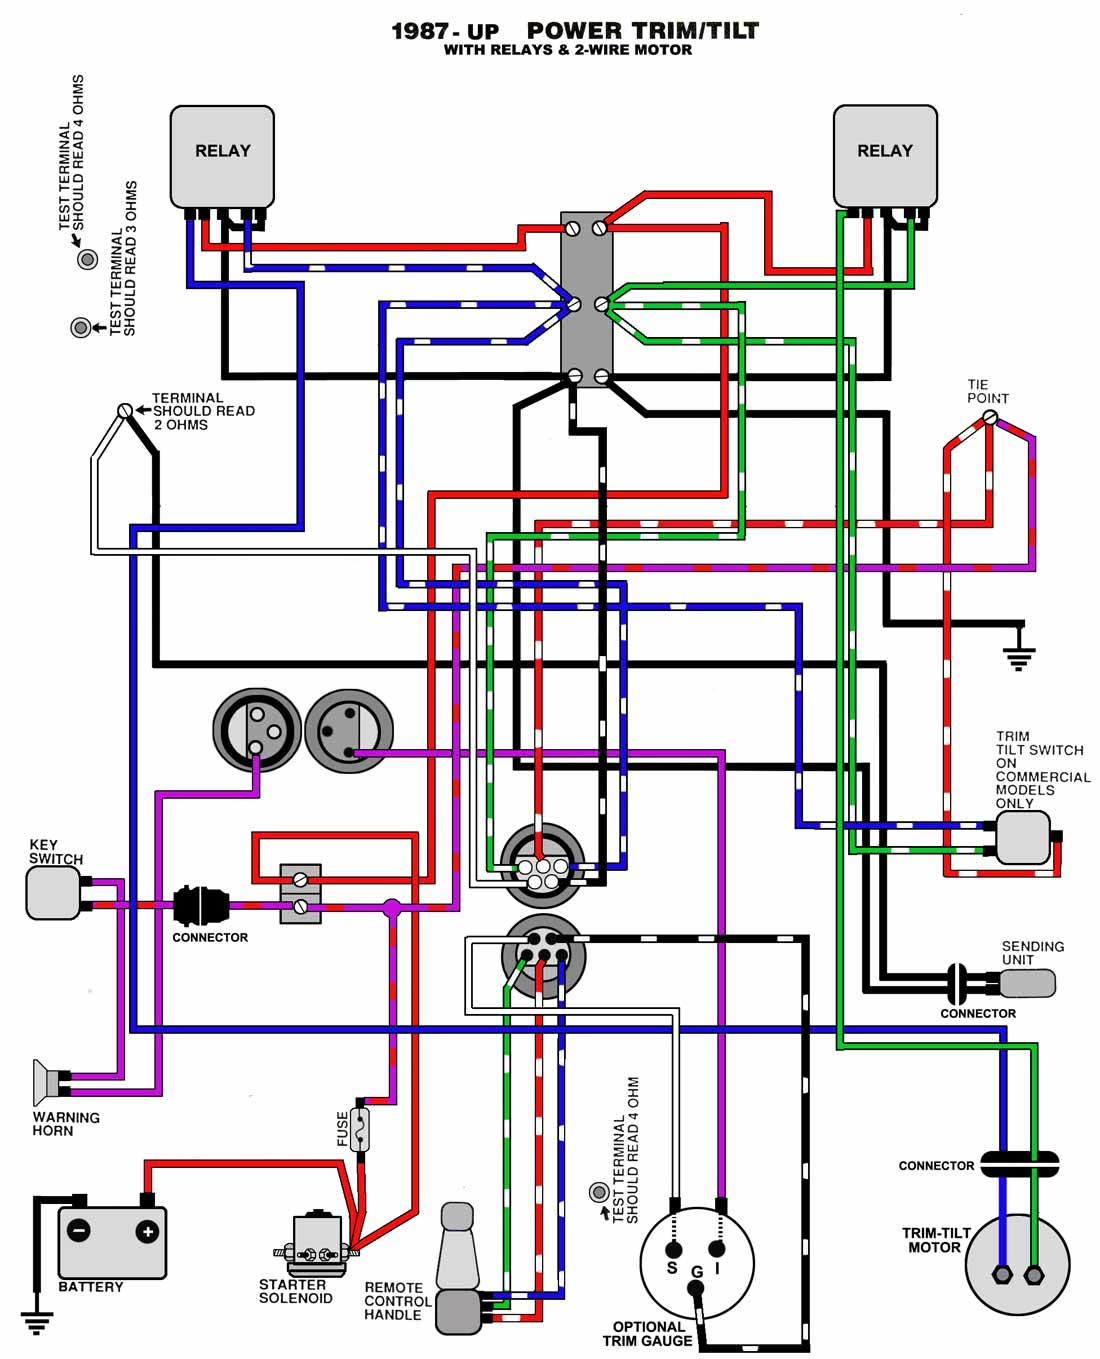 TnT_87_UP mastertech marine evinrude johnson outboard wiring diagrams 3 wire tilt trim wiring diagram at couponss.co